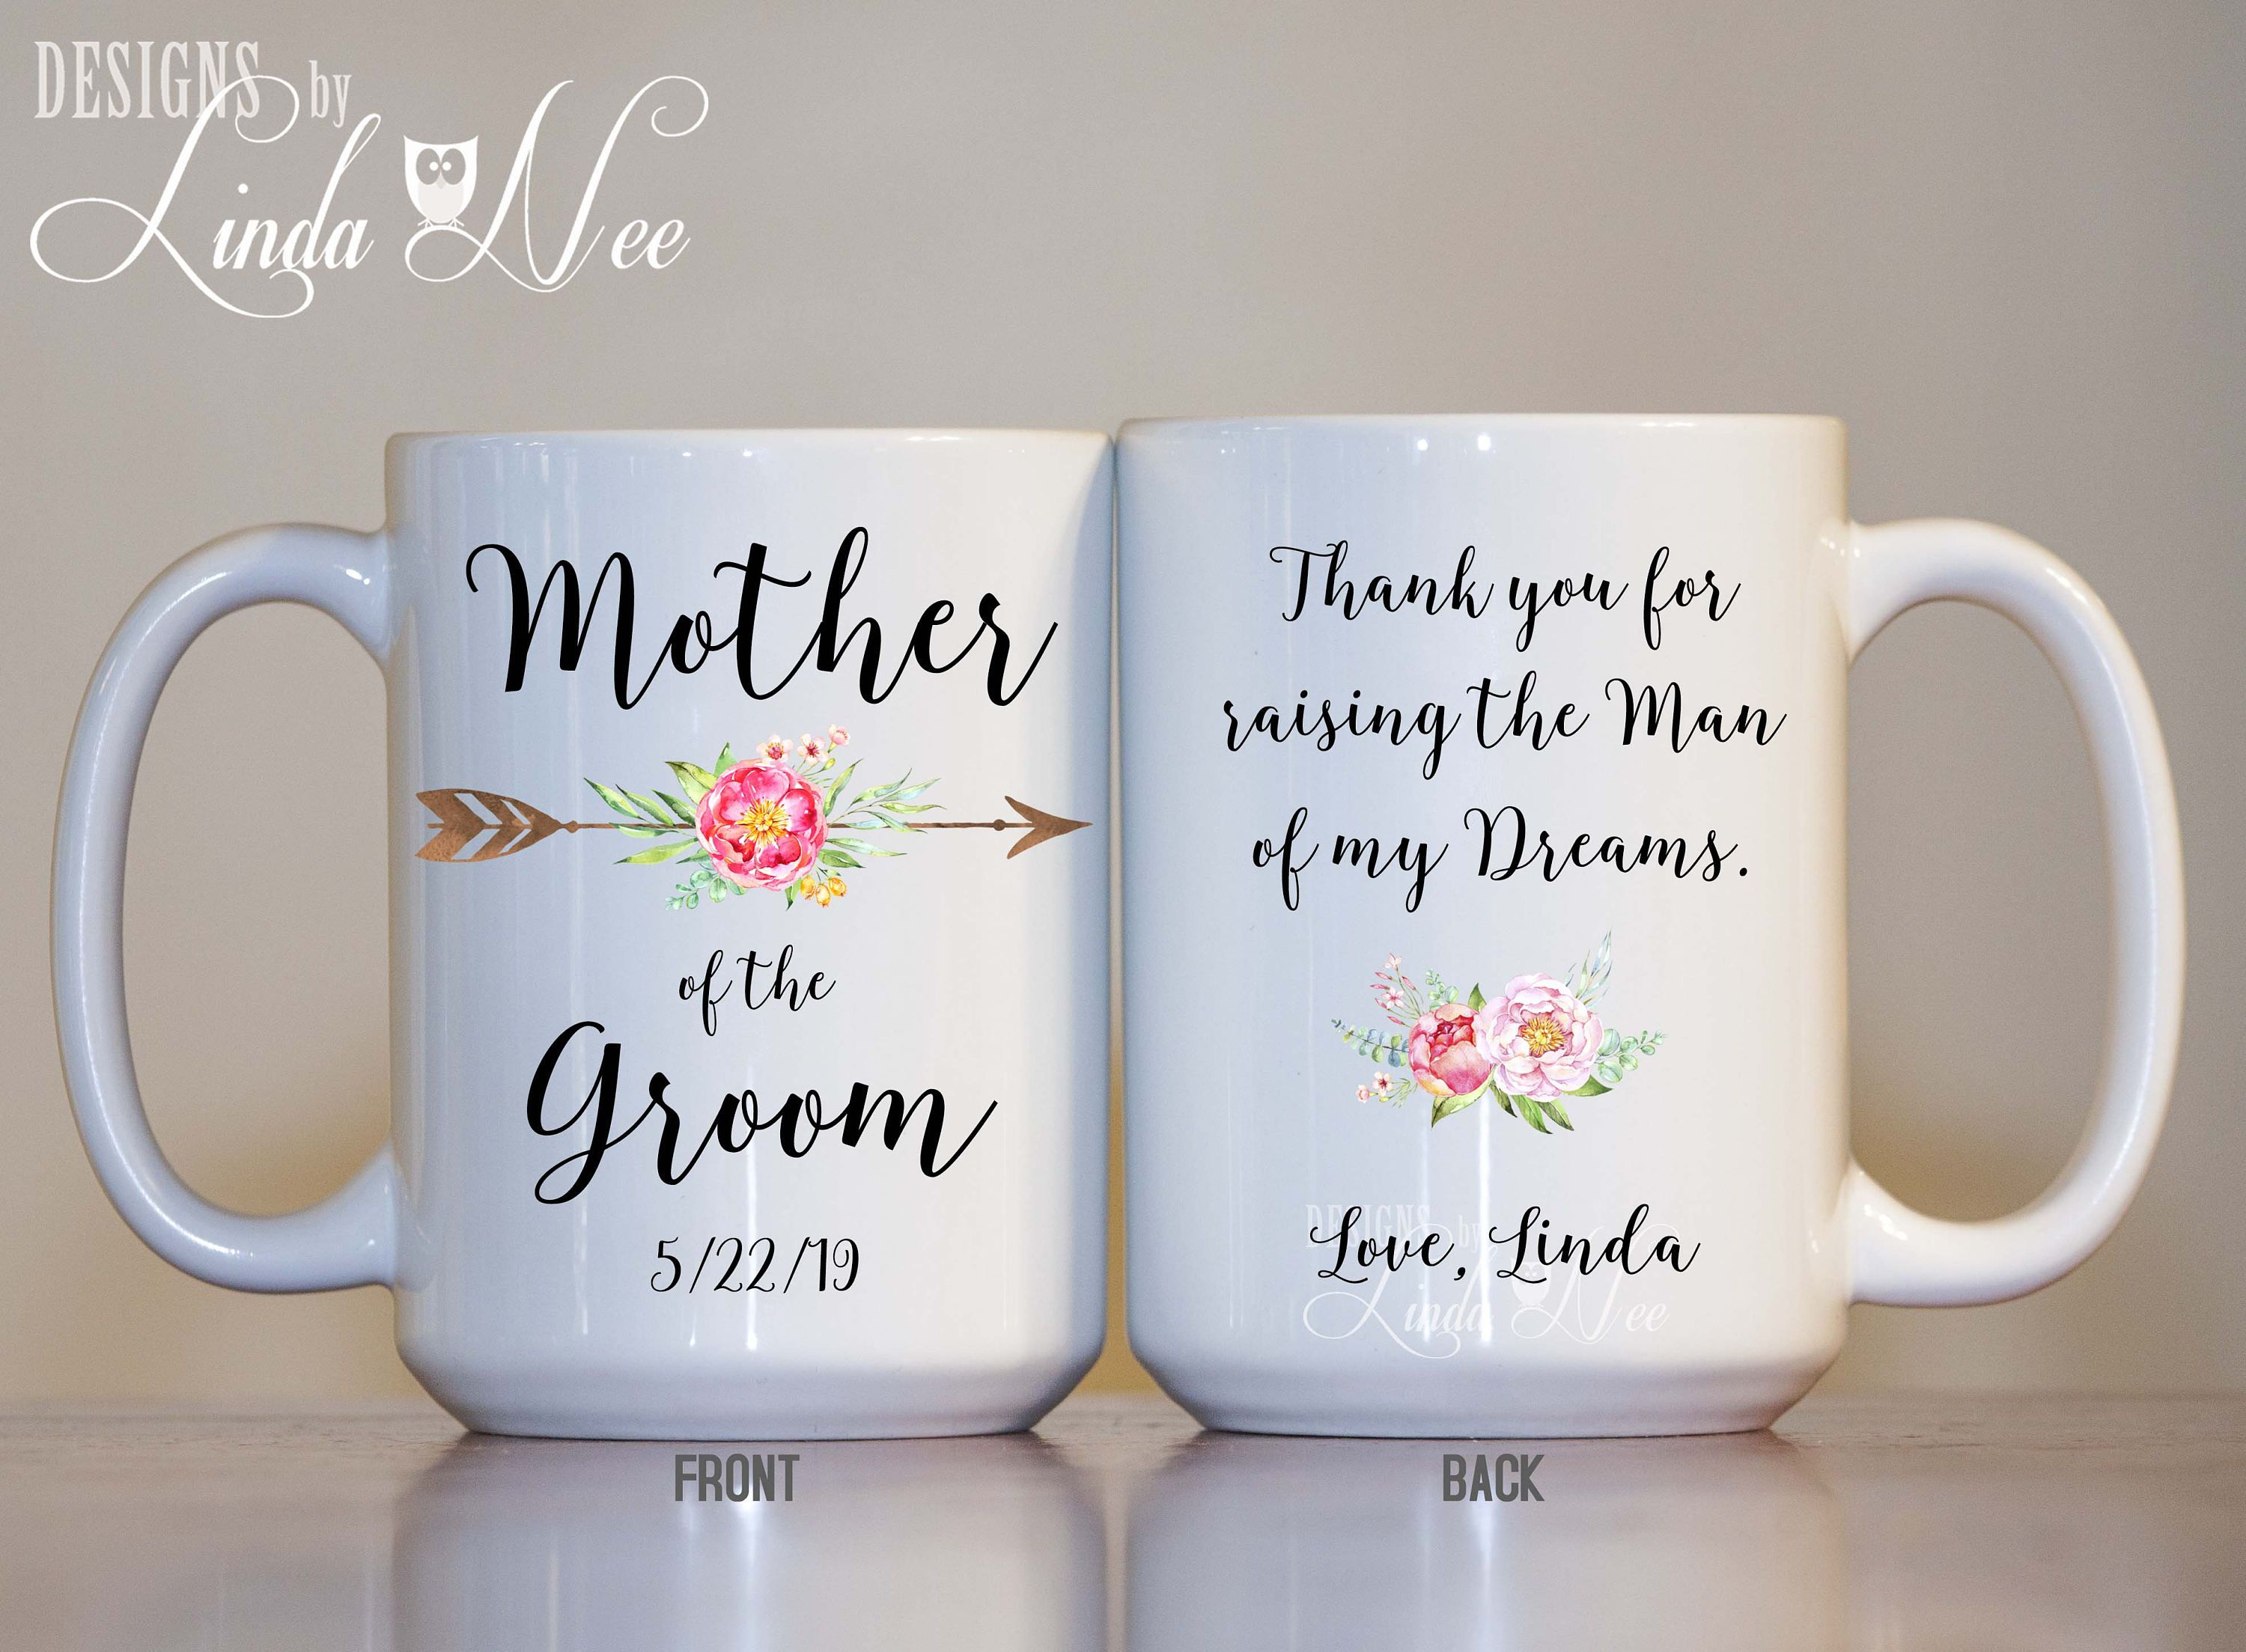 c6bf50f2ee24c Personalized Mother of the Groom Mug, Thank you for raising the Man ...